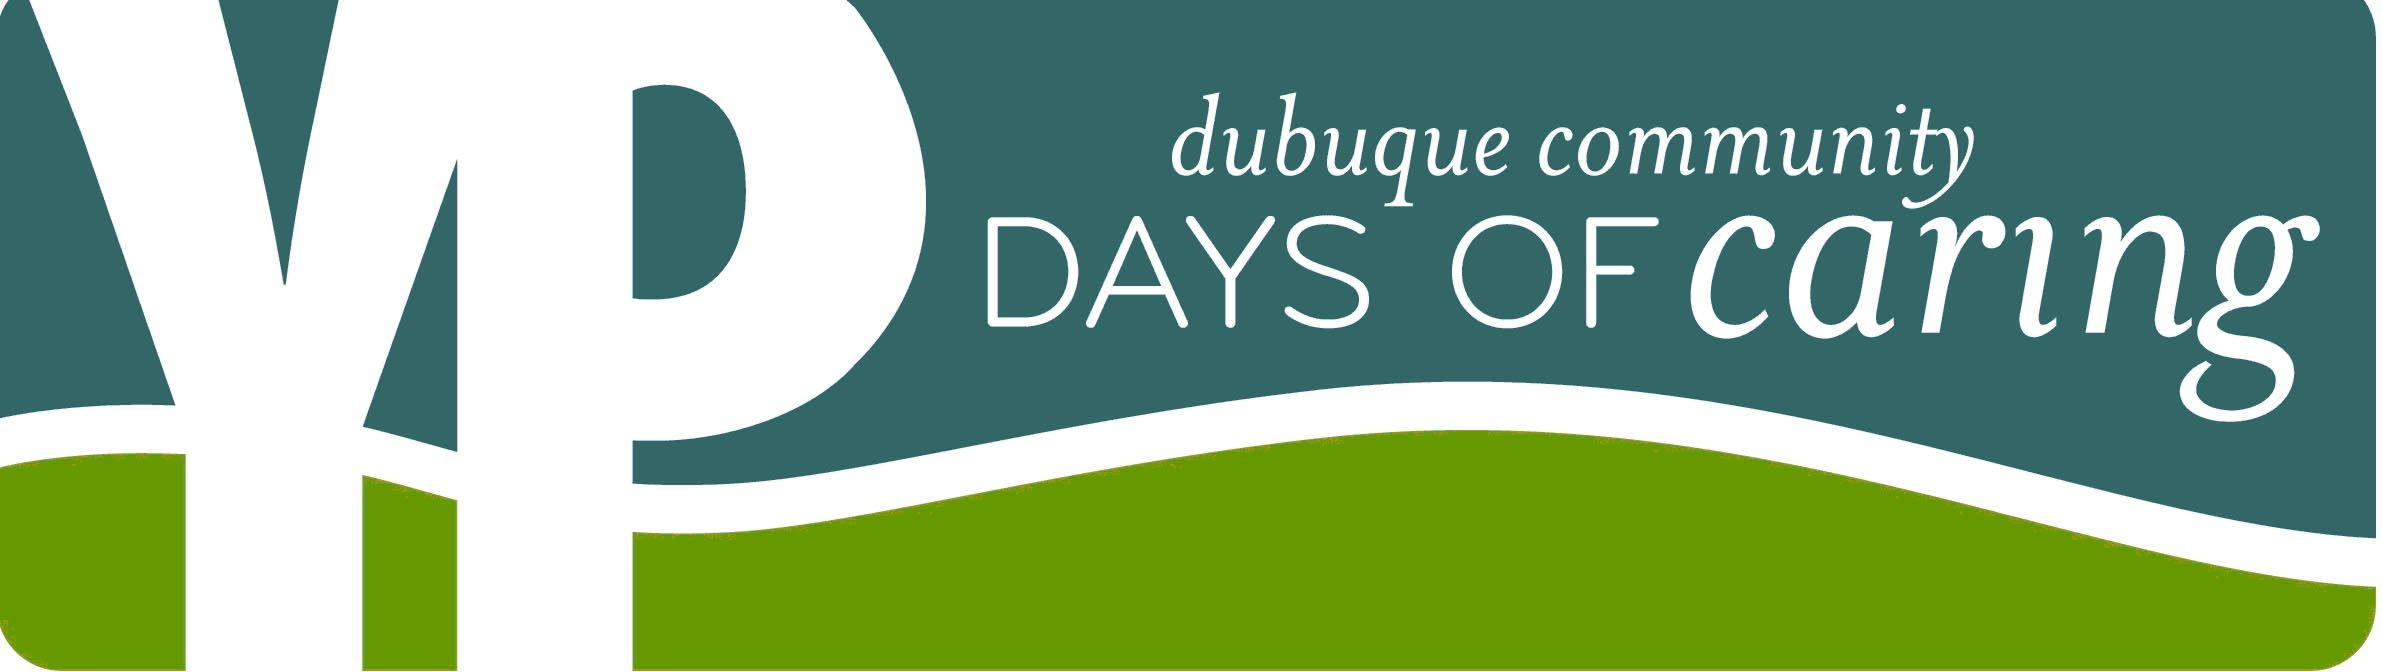 Dubuque Community Days of Caring